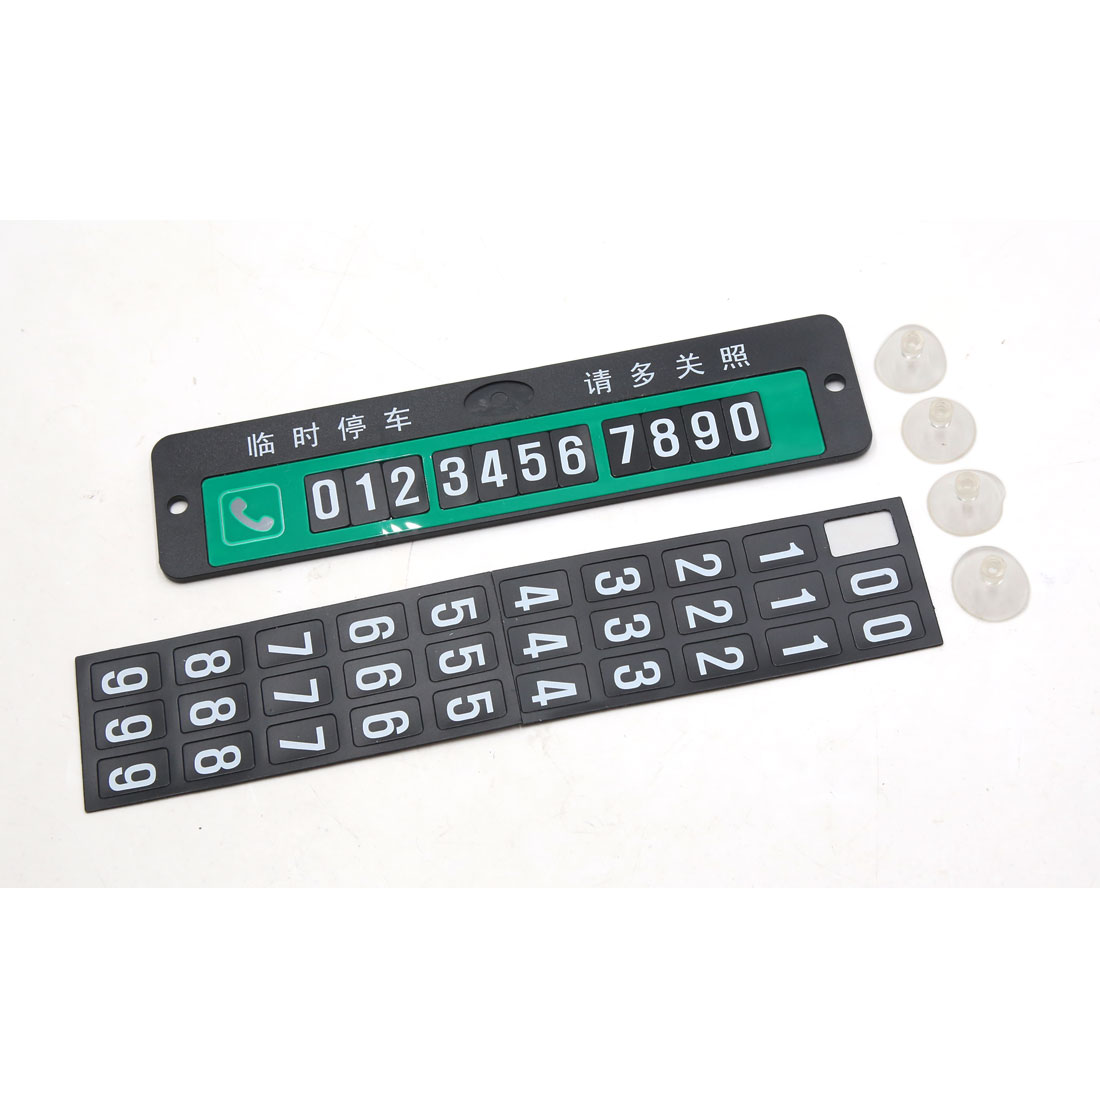 Green Car Auto Temporary Parking Notification Phone Number Card 20 x 4.8 x 0.3cm